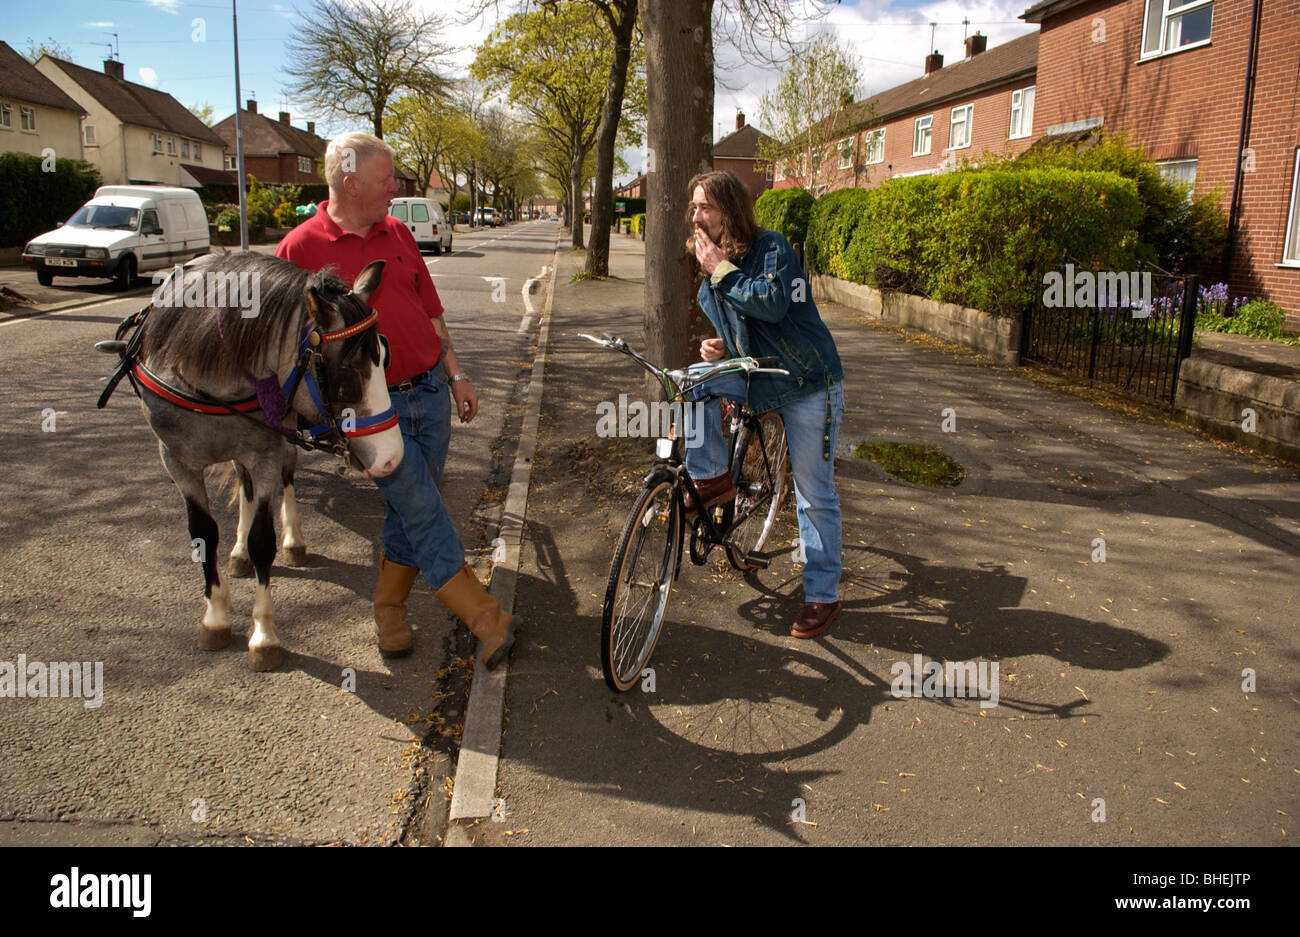 Man with pony and trap chatting to man with bicycle on street in suburb of Cardiff South Wales UK - Stock Image